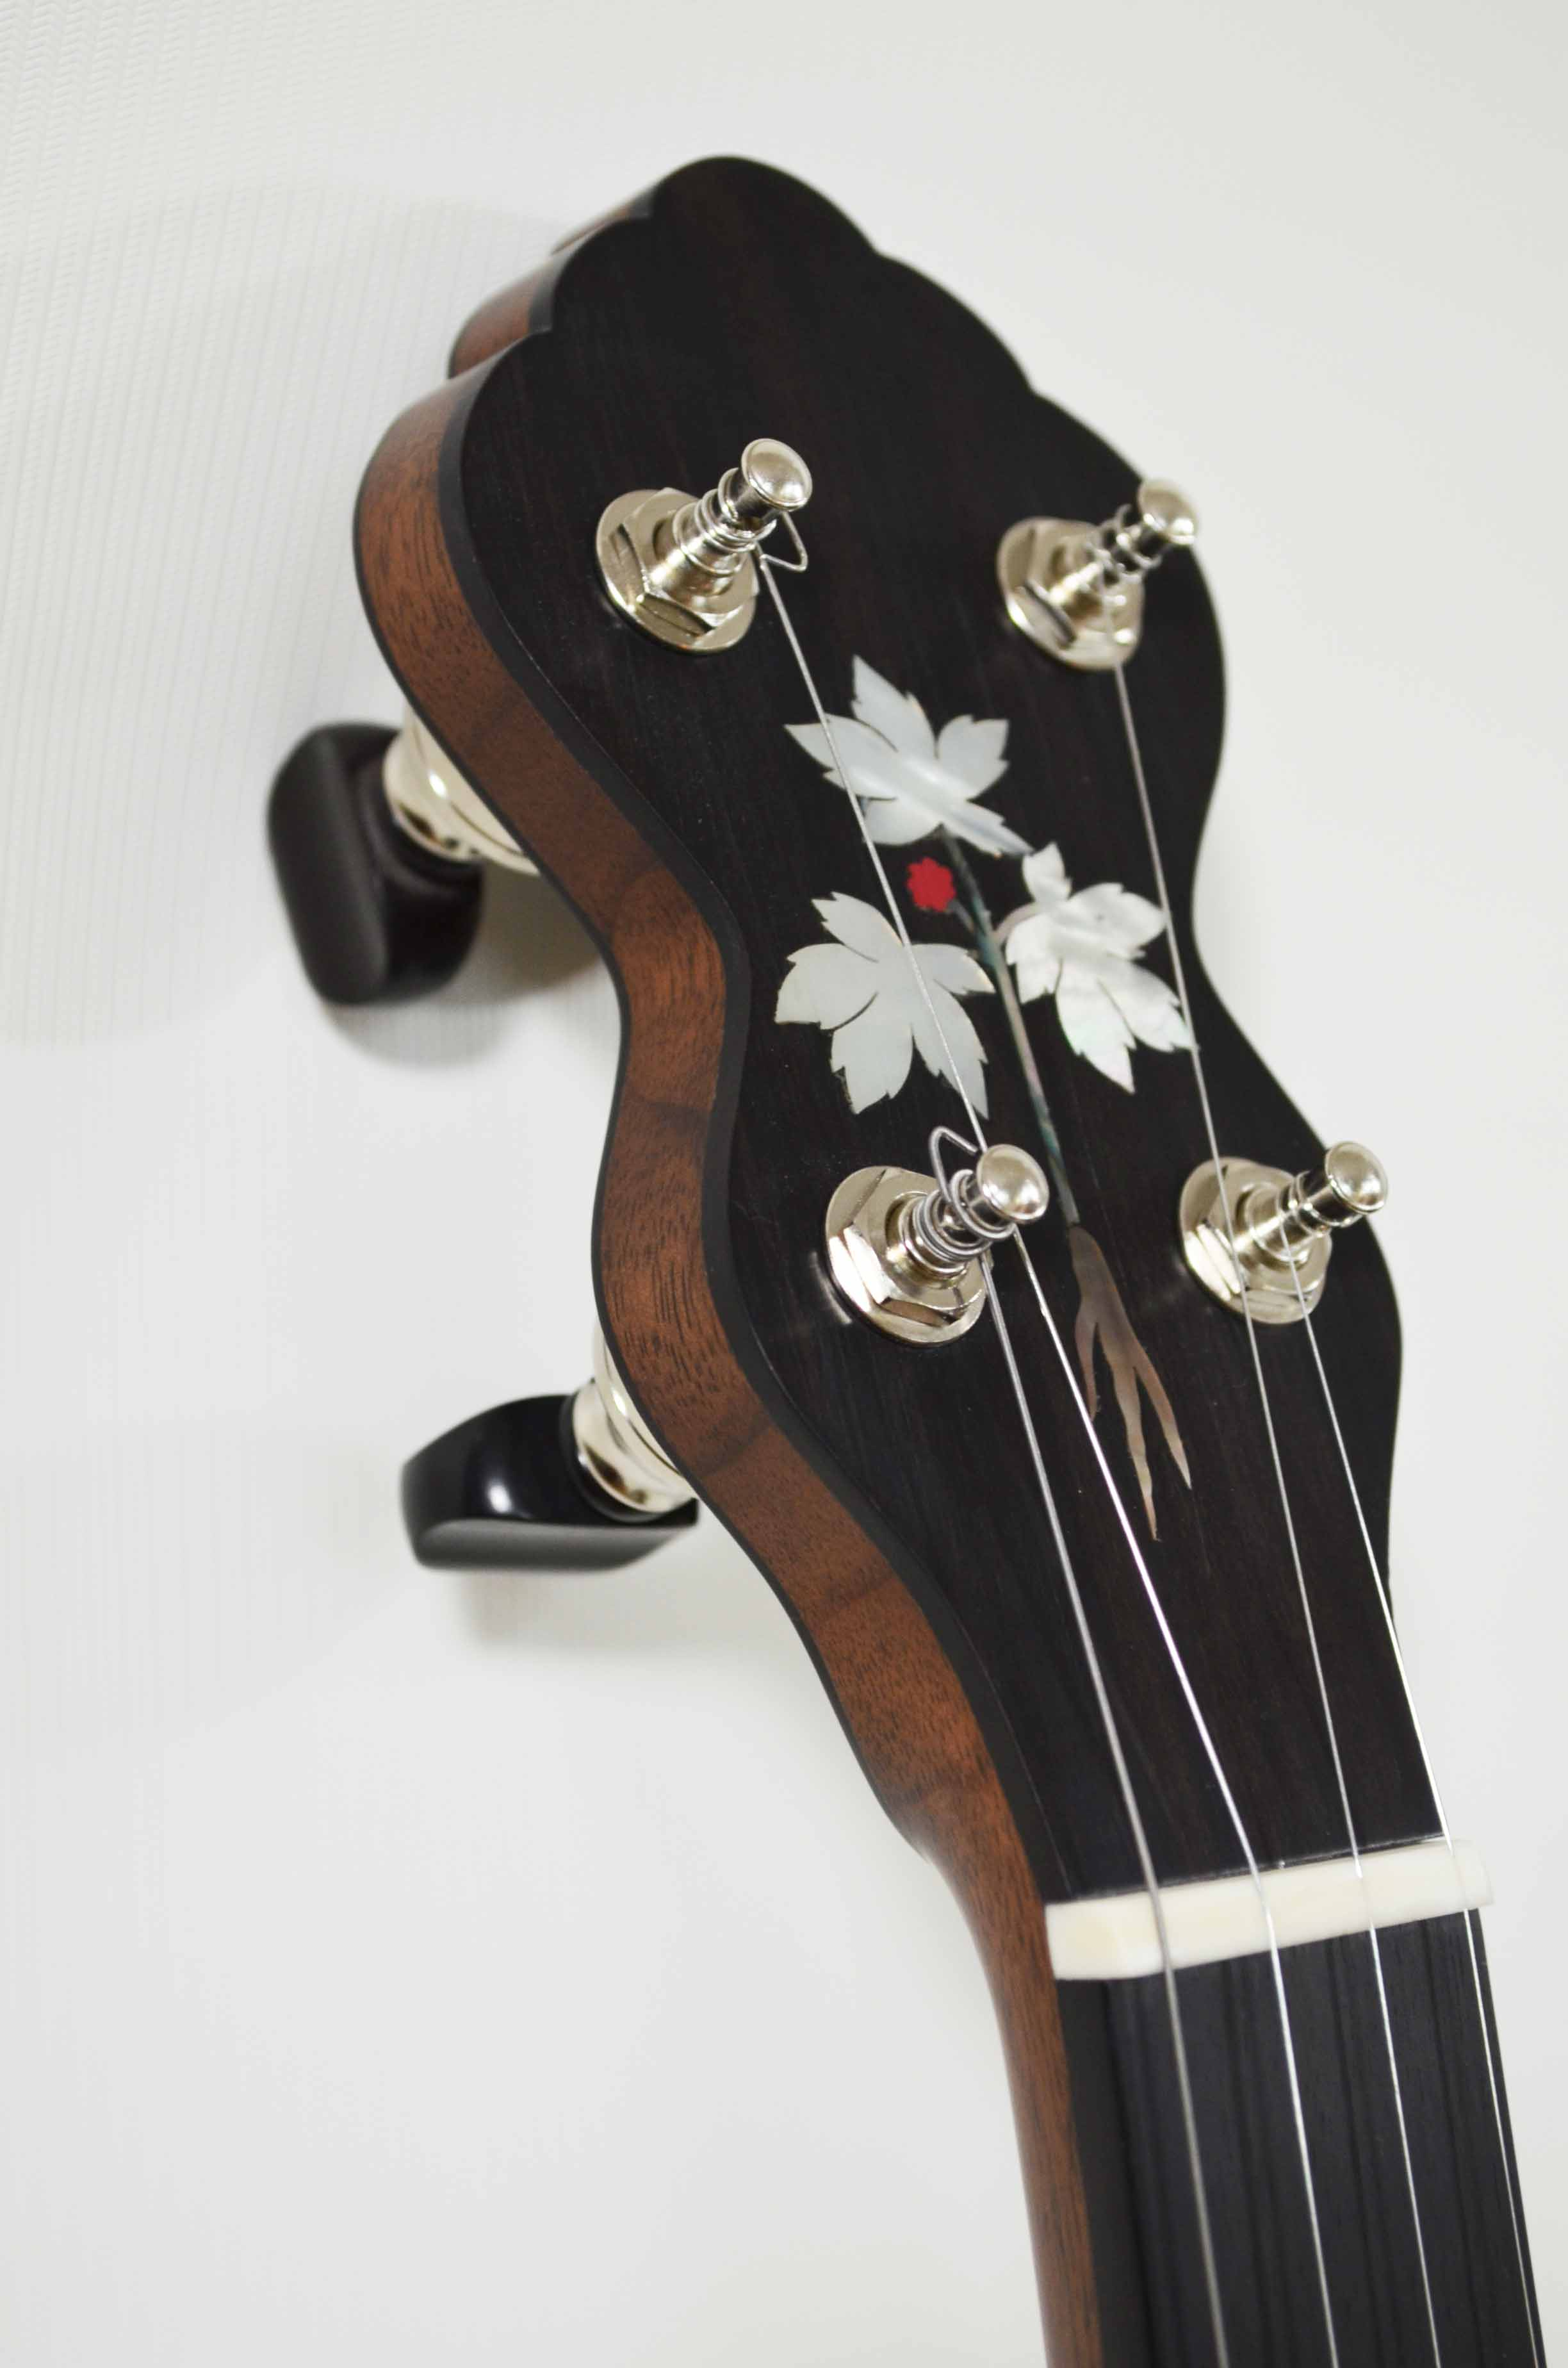 Walnut L Model with ebony back plate and ginseng inlay